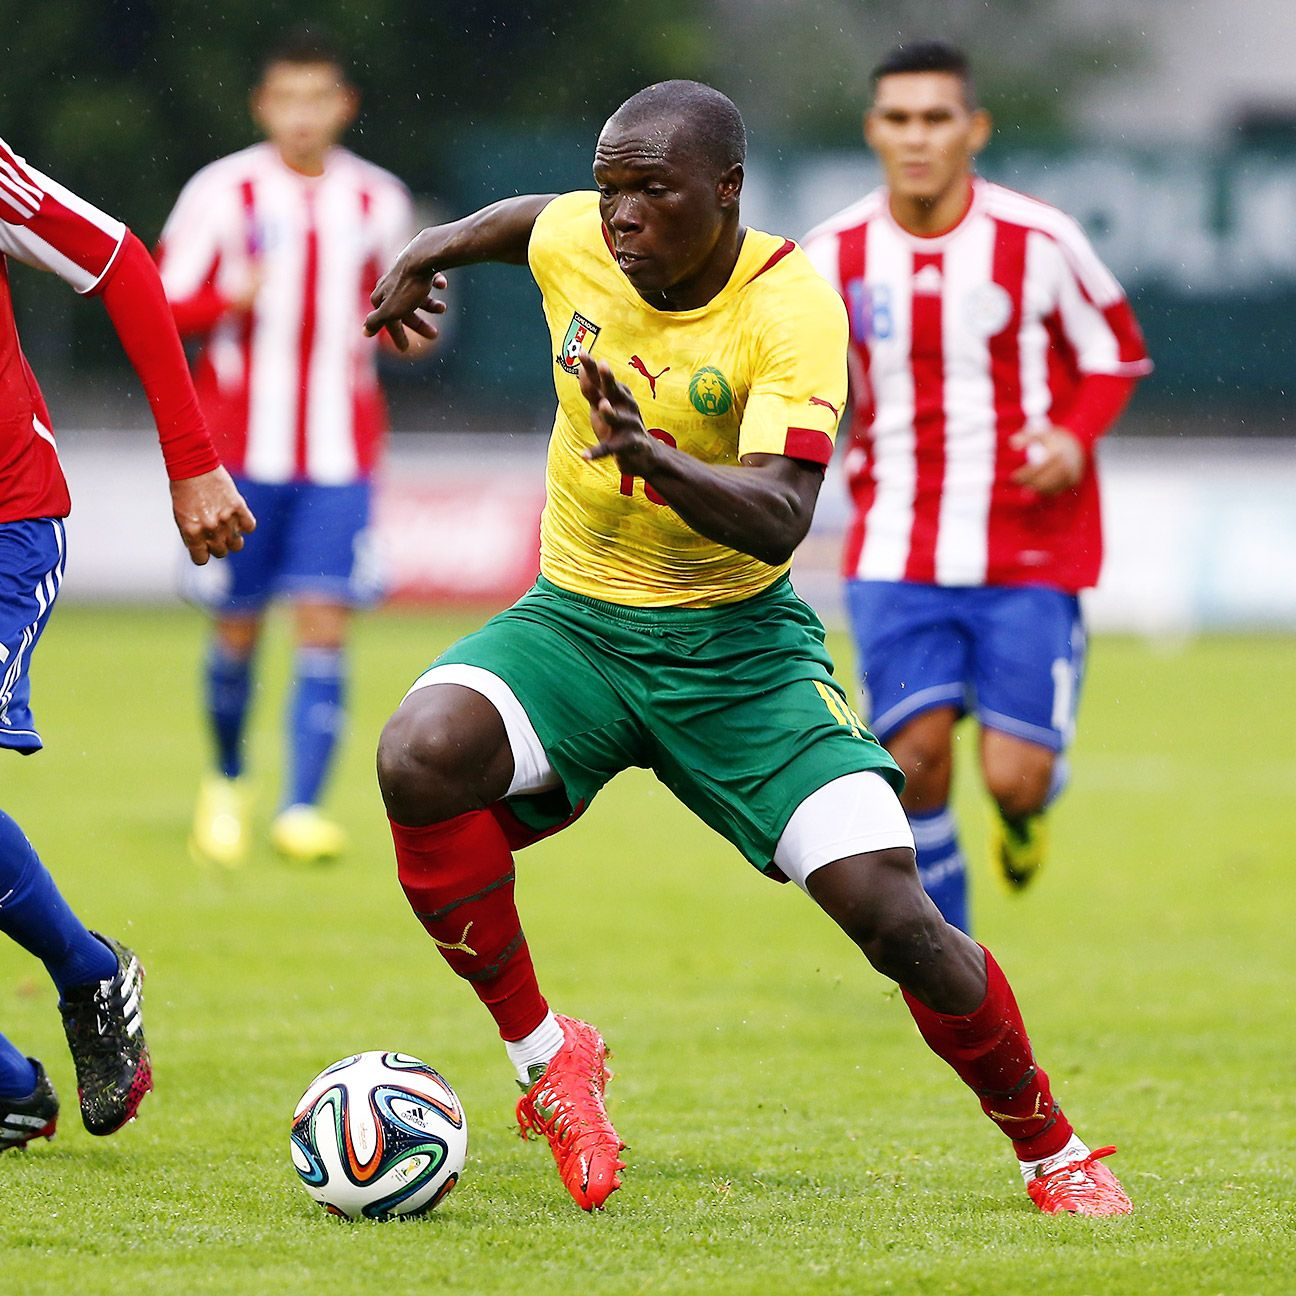 Vincent Aboubakar's pace and power is a real asset for Cameroon.